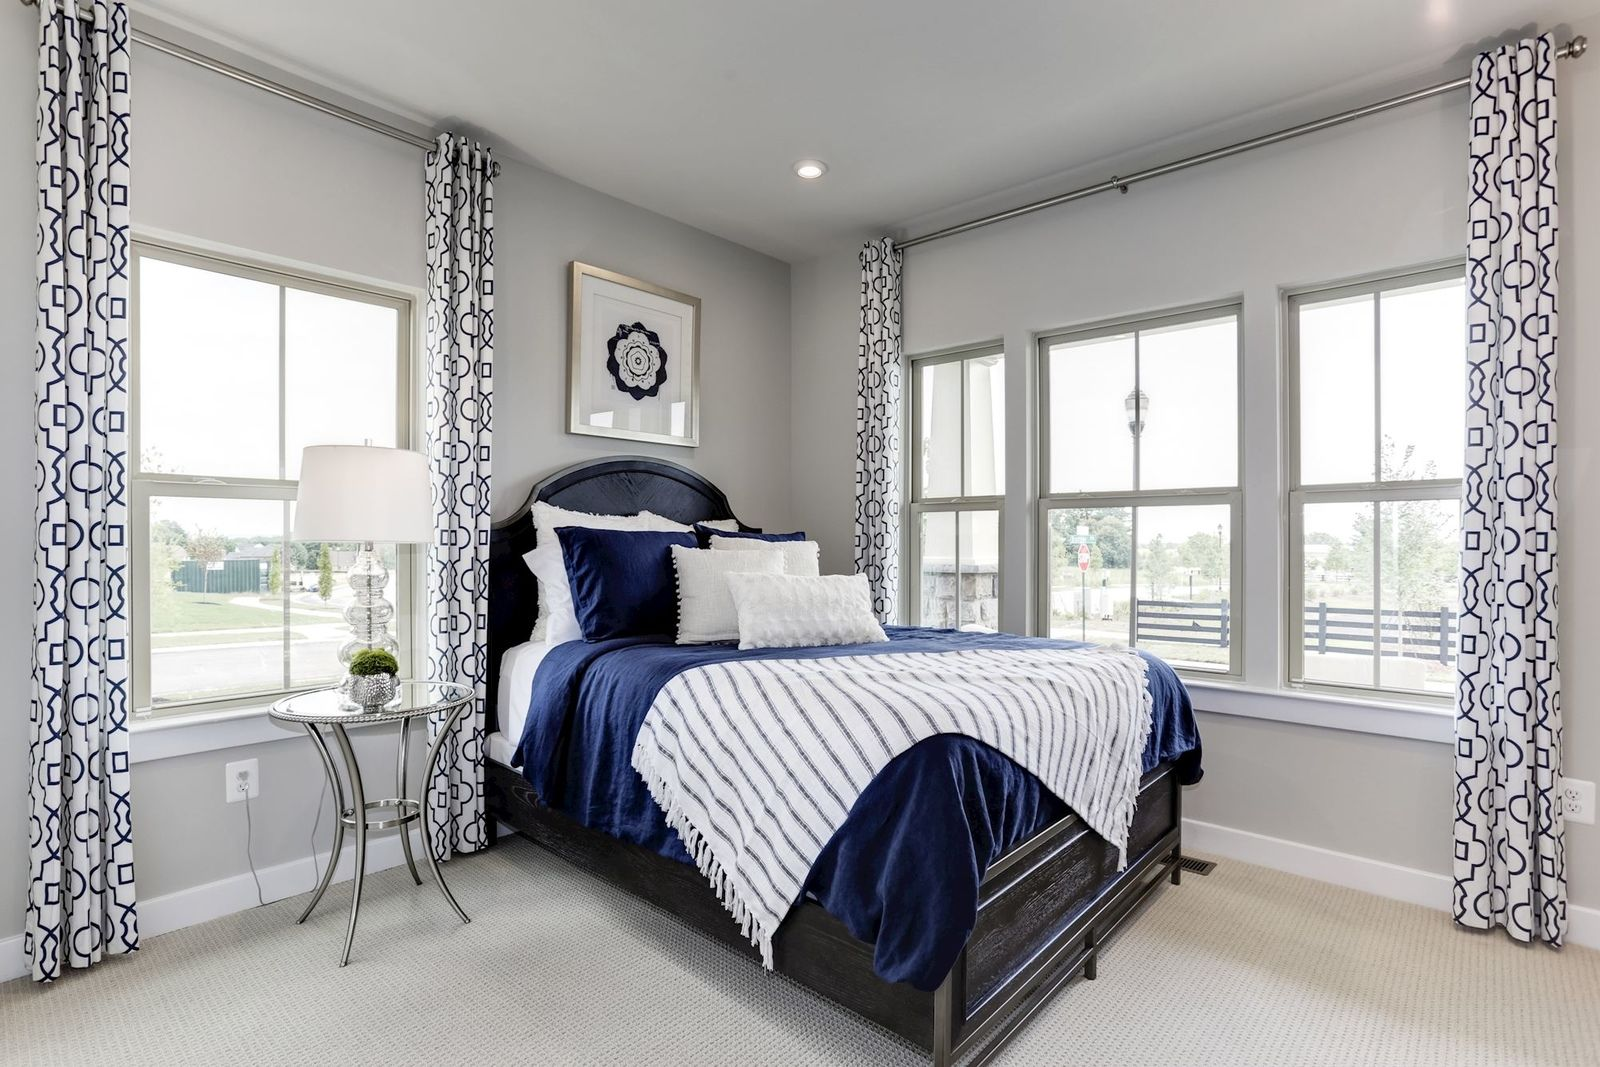 Bedroom featured in the Palladio 2 Story By Ryan Homes in Philadelphia, NJ